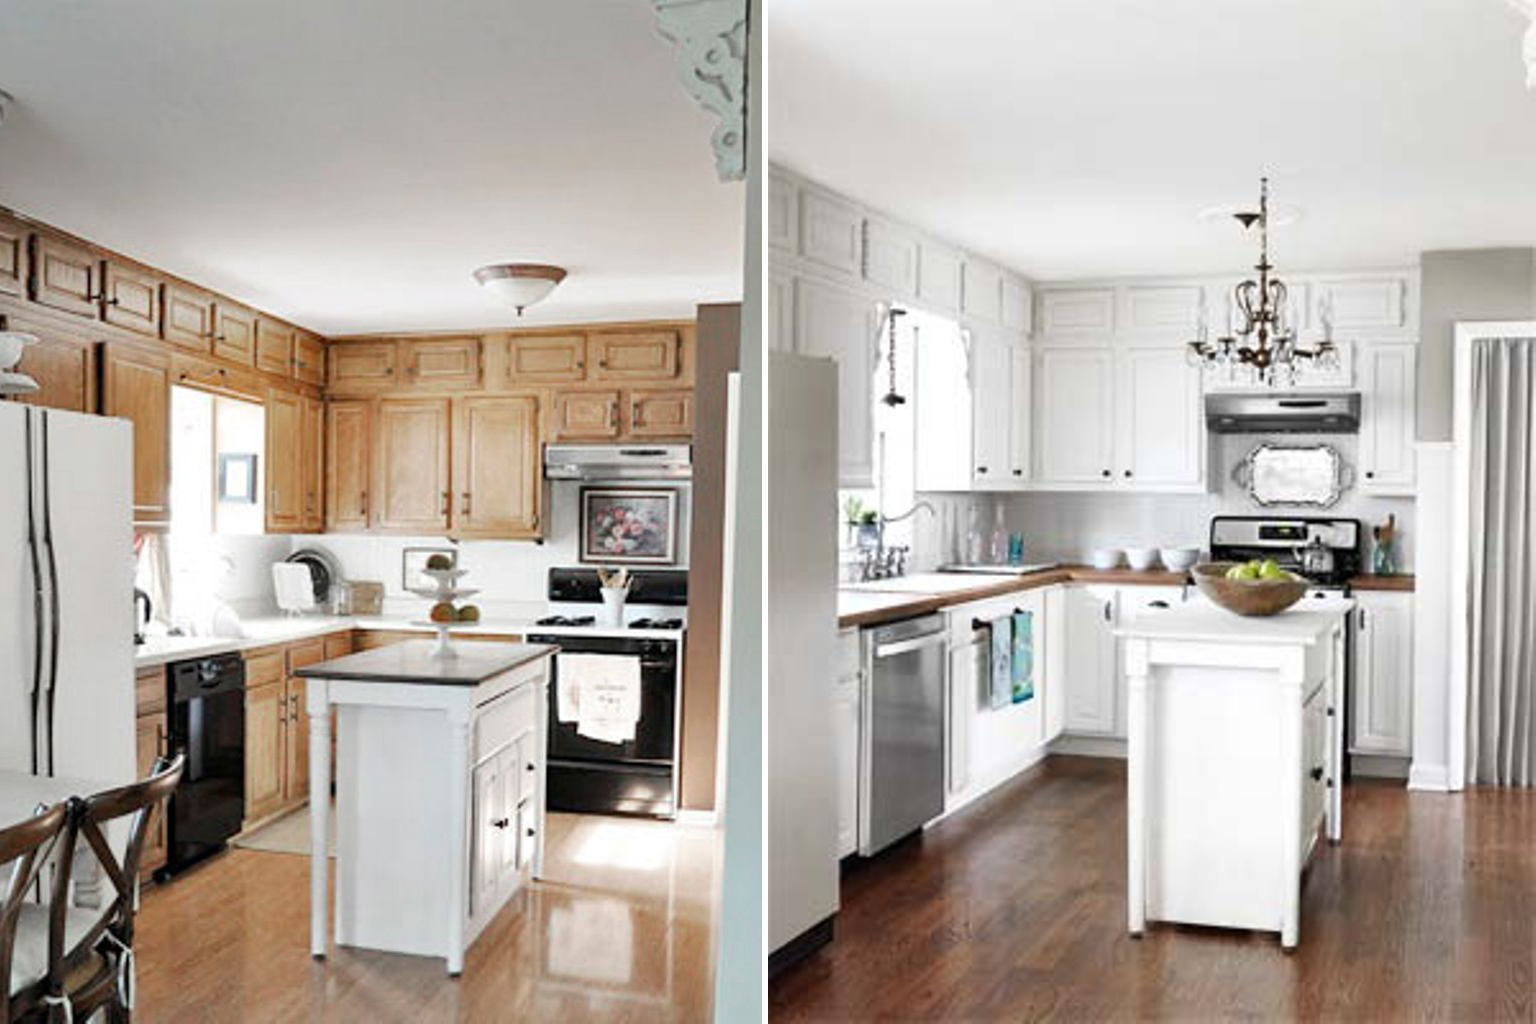 Benjamin moore muslin paint kitchen design ideas for Benjamin moore kitchen paint ideas